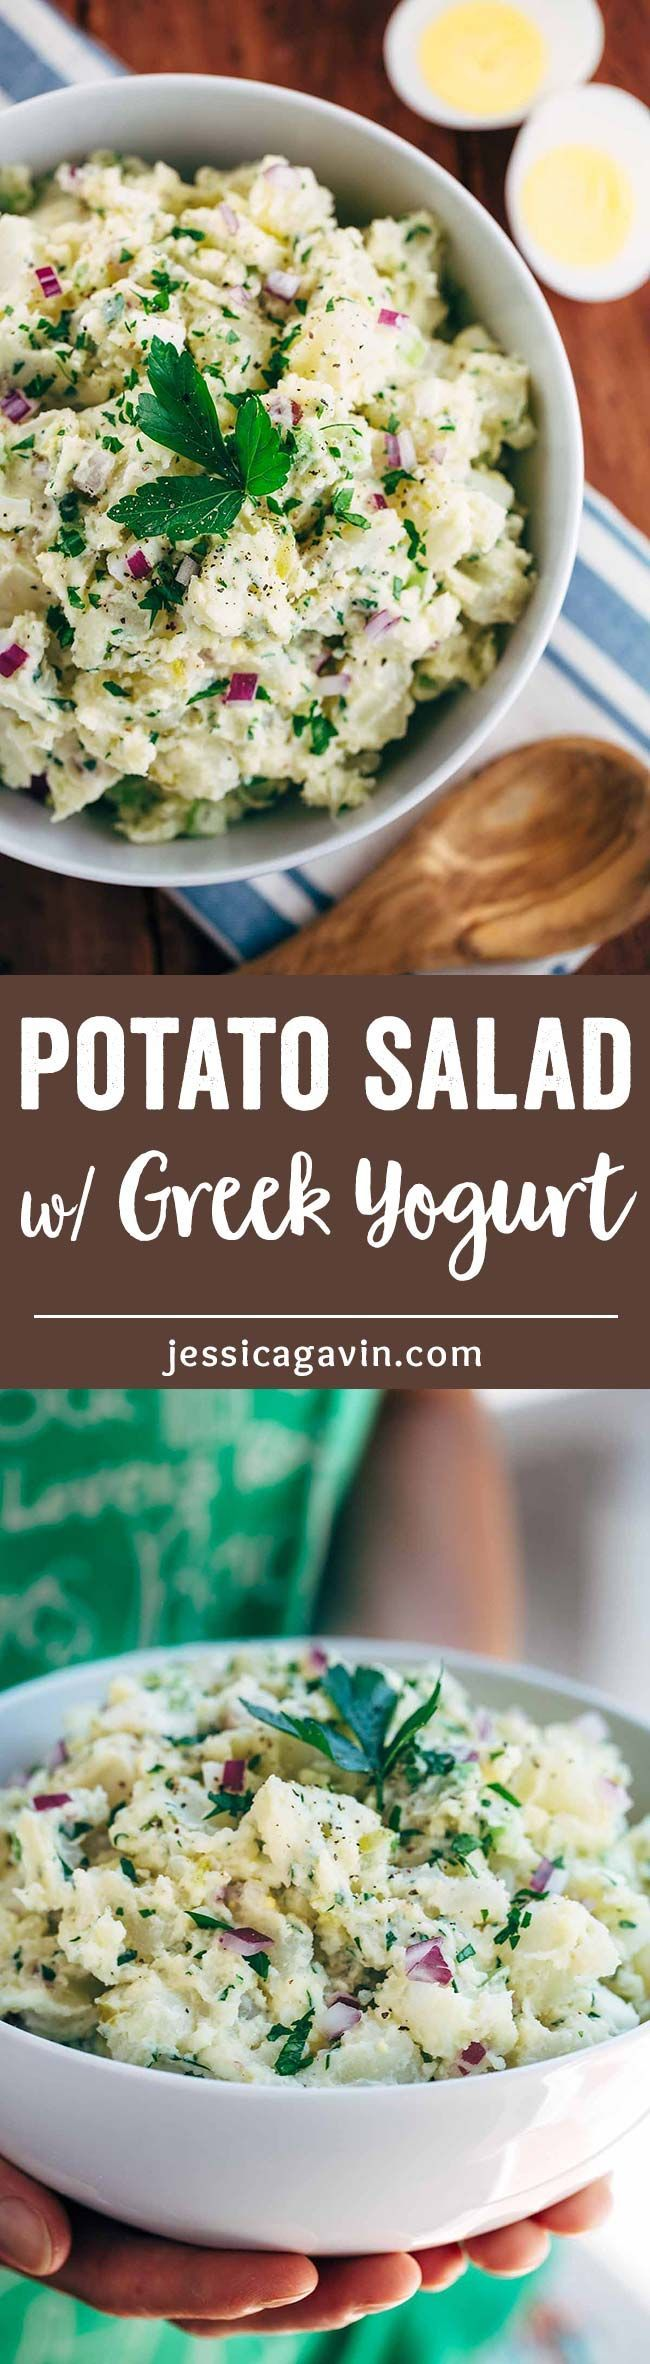 Easy Creamy Potato Salad with Yogurt - A healthier version of this classic side dish with extra protein and the luscious texture you crave! | jessicagavin.com